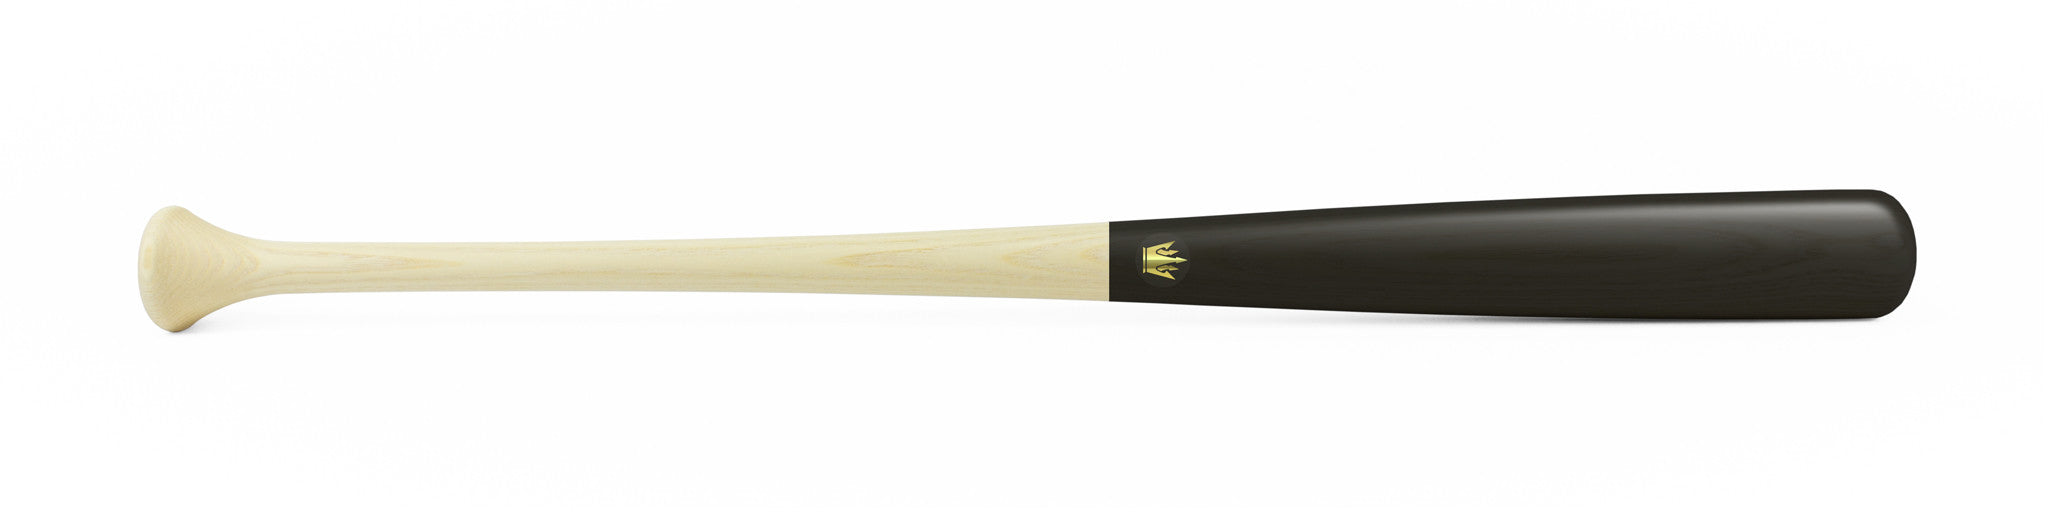 Wood bat - Ash model 280 Black Standard - 23